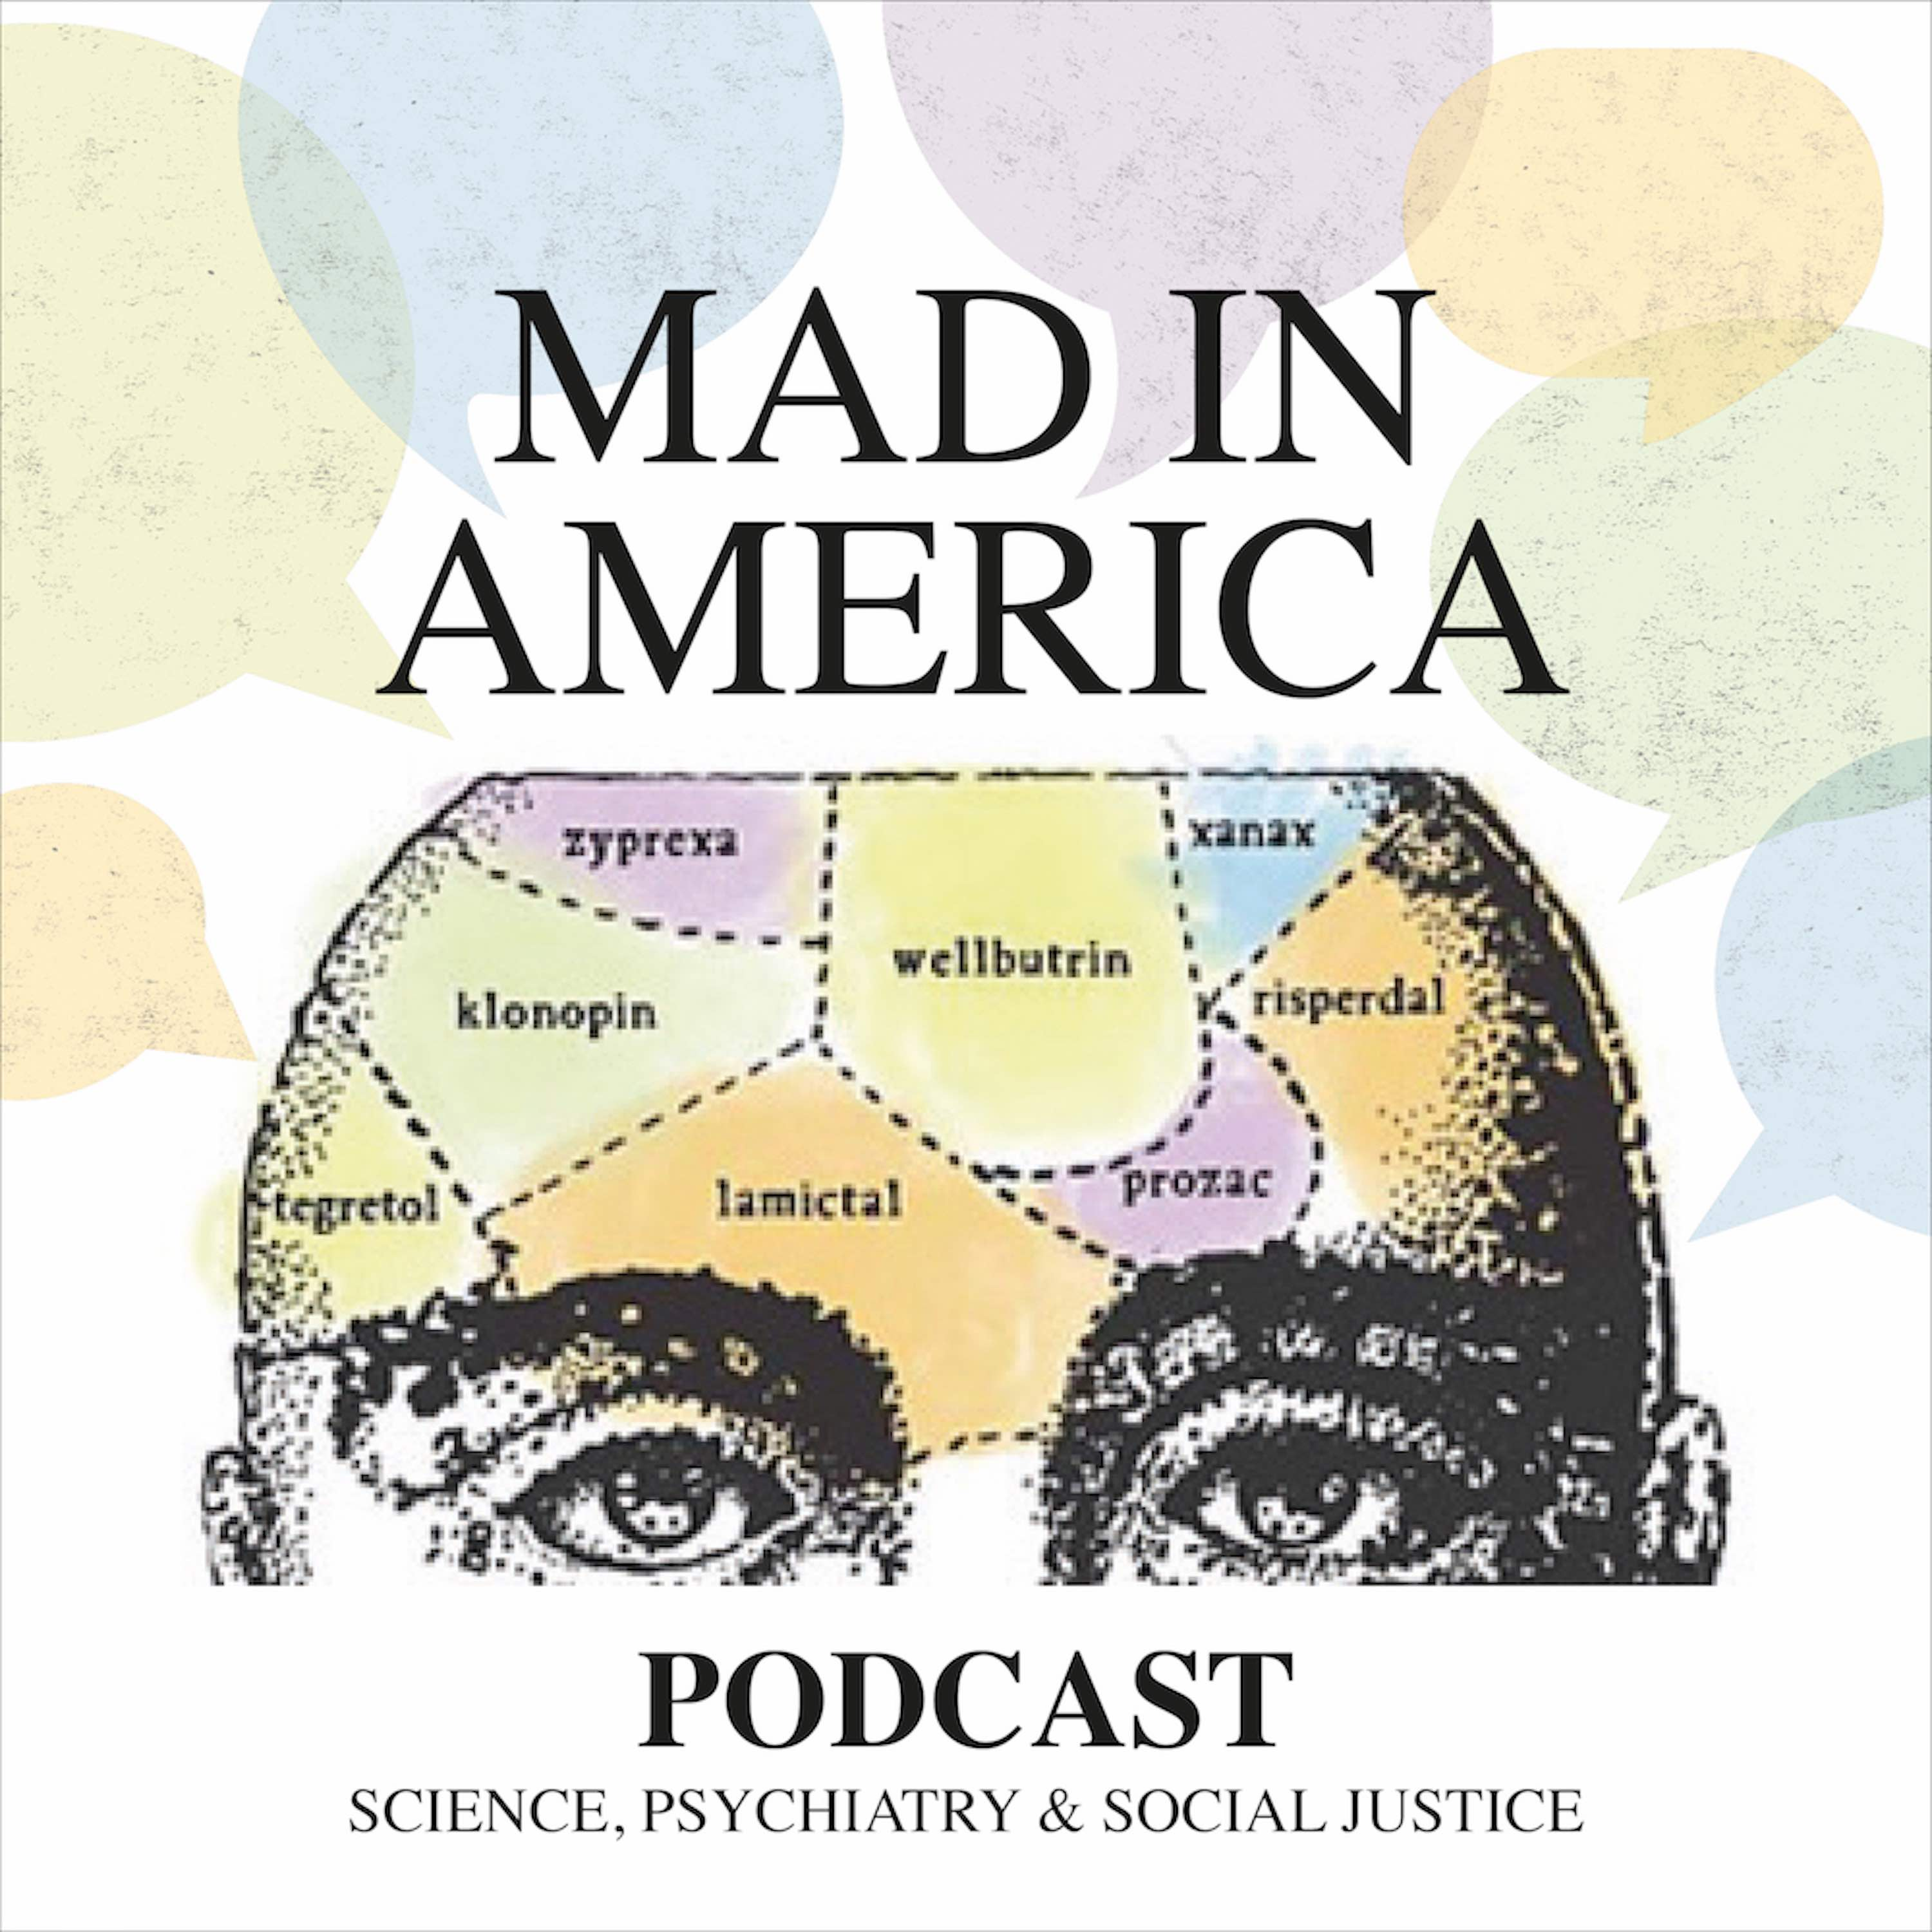 Mad in America: Rethinking Mental Health - George Atwood - Shattered Worlds, the Experience of Personal Annihilation